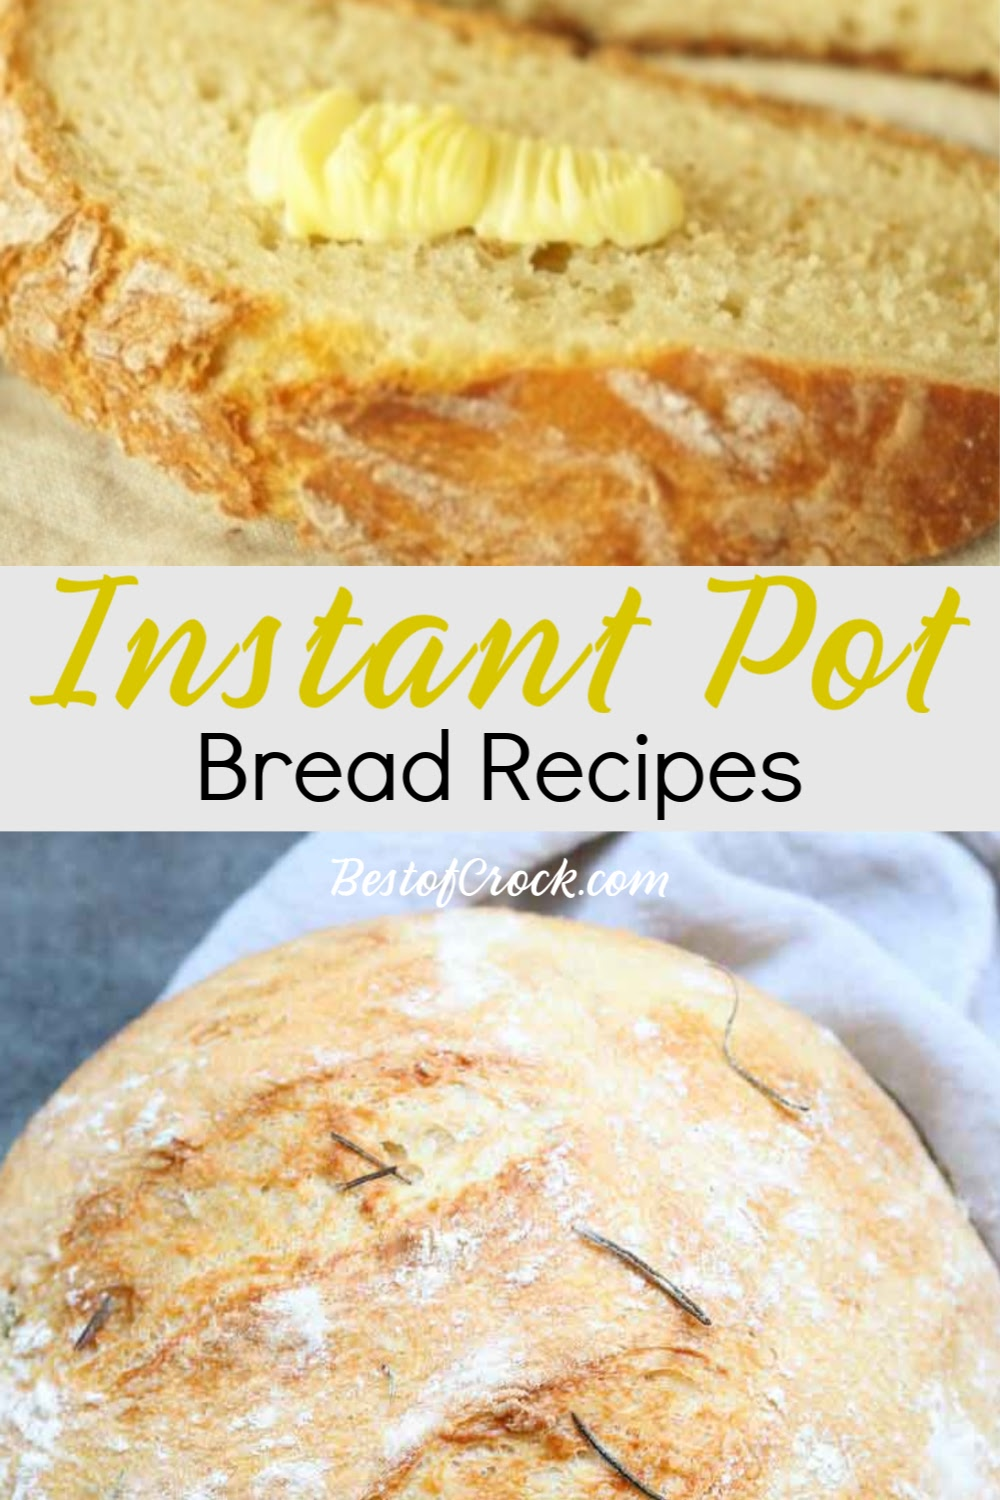 Instant Pot bread recipes make cooking bread at home and enjoying freshly made bread so much easier to do on a weekly basis. Instant Pot Bread Ideas | Tips for Making Bread Instant Pot | Instant Pot Appetizer Recipe | Instant Pot Side Dish Recipe | Dinner Recipes Instant Pot | Breakfast Recipes Instant Pot #instantpot #bread via @bestofcrock